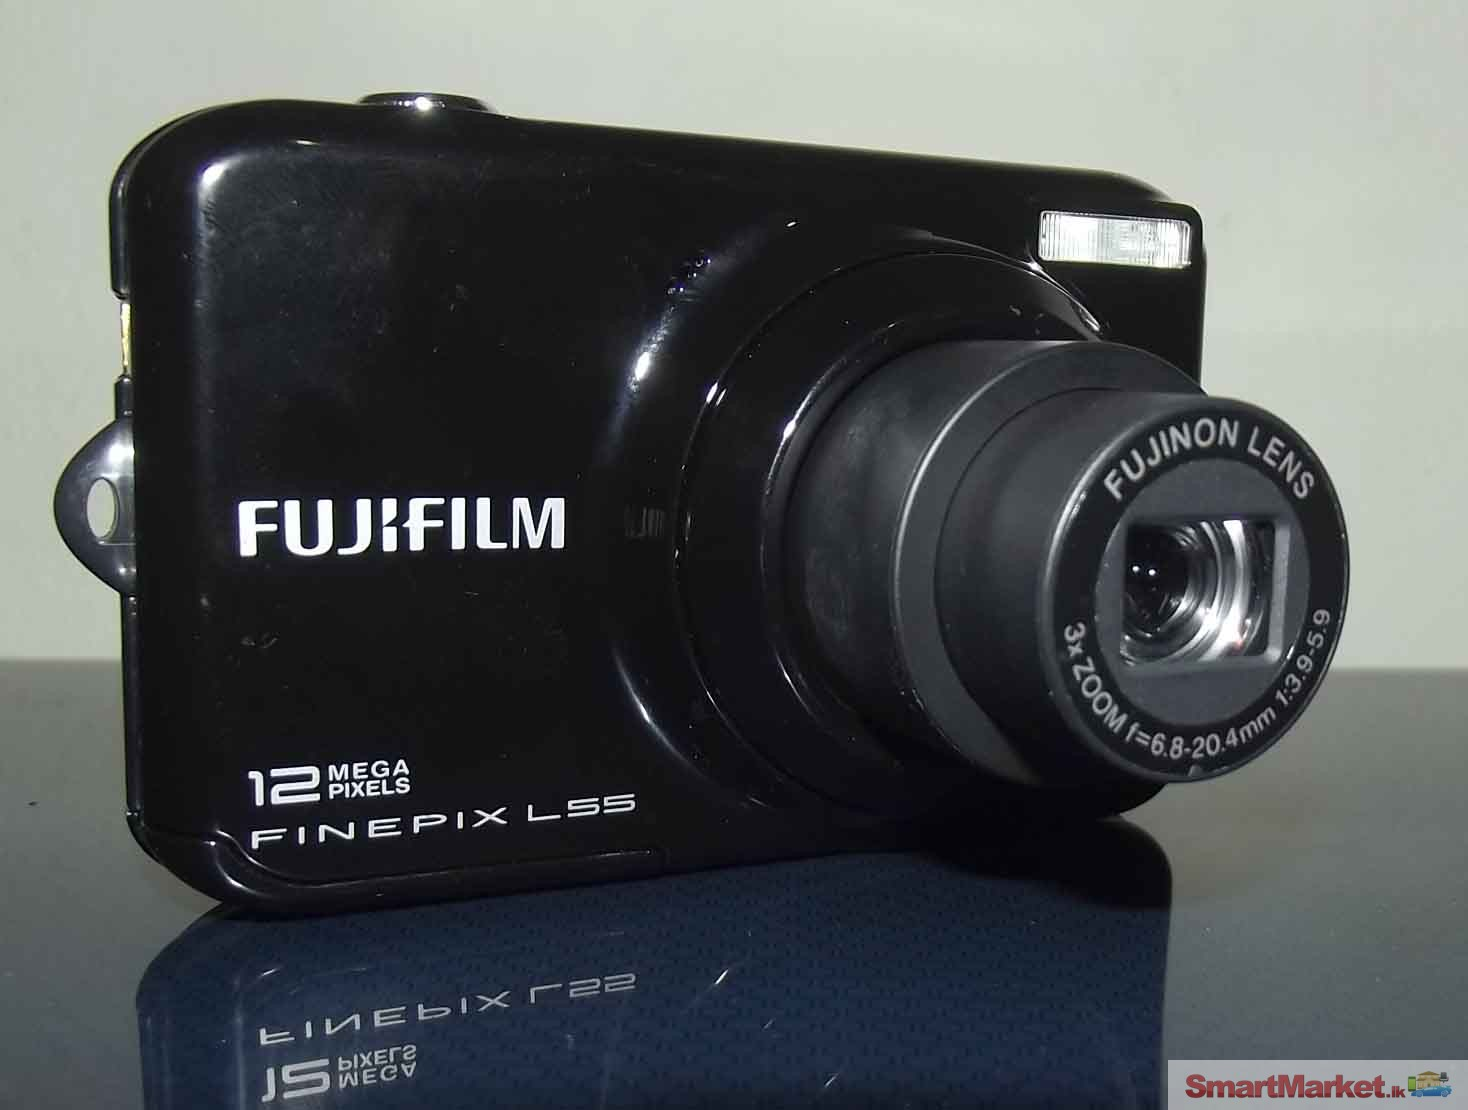 Fujifilm Finepix L55 12MPx Camera